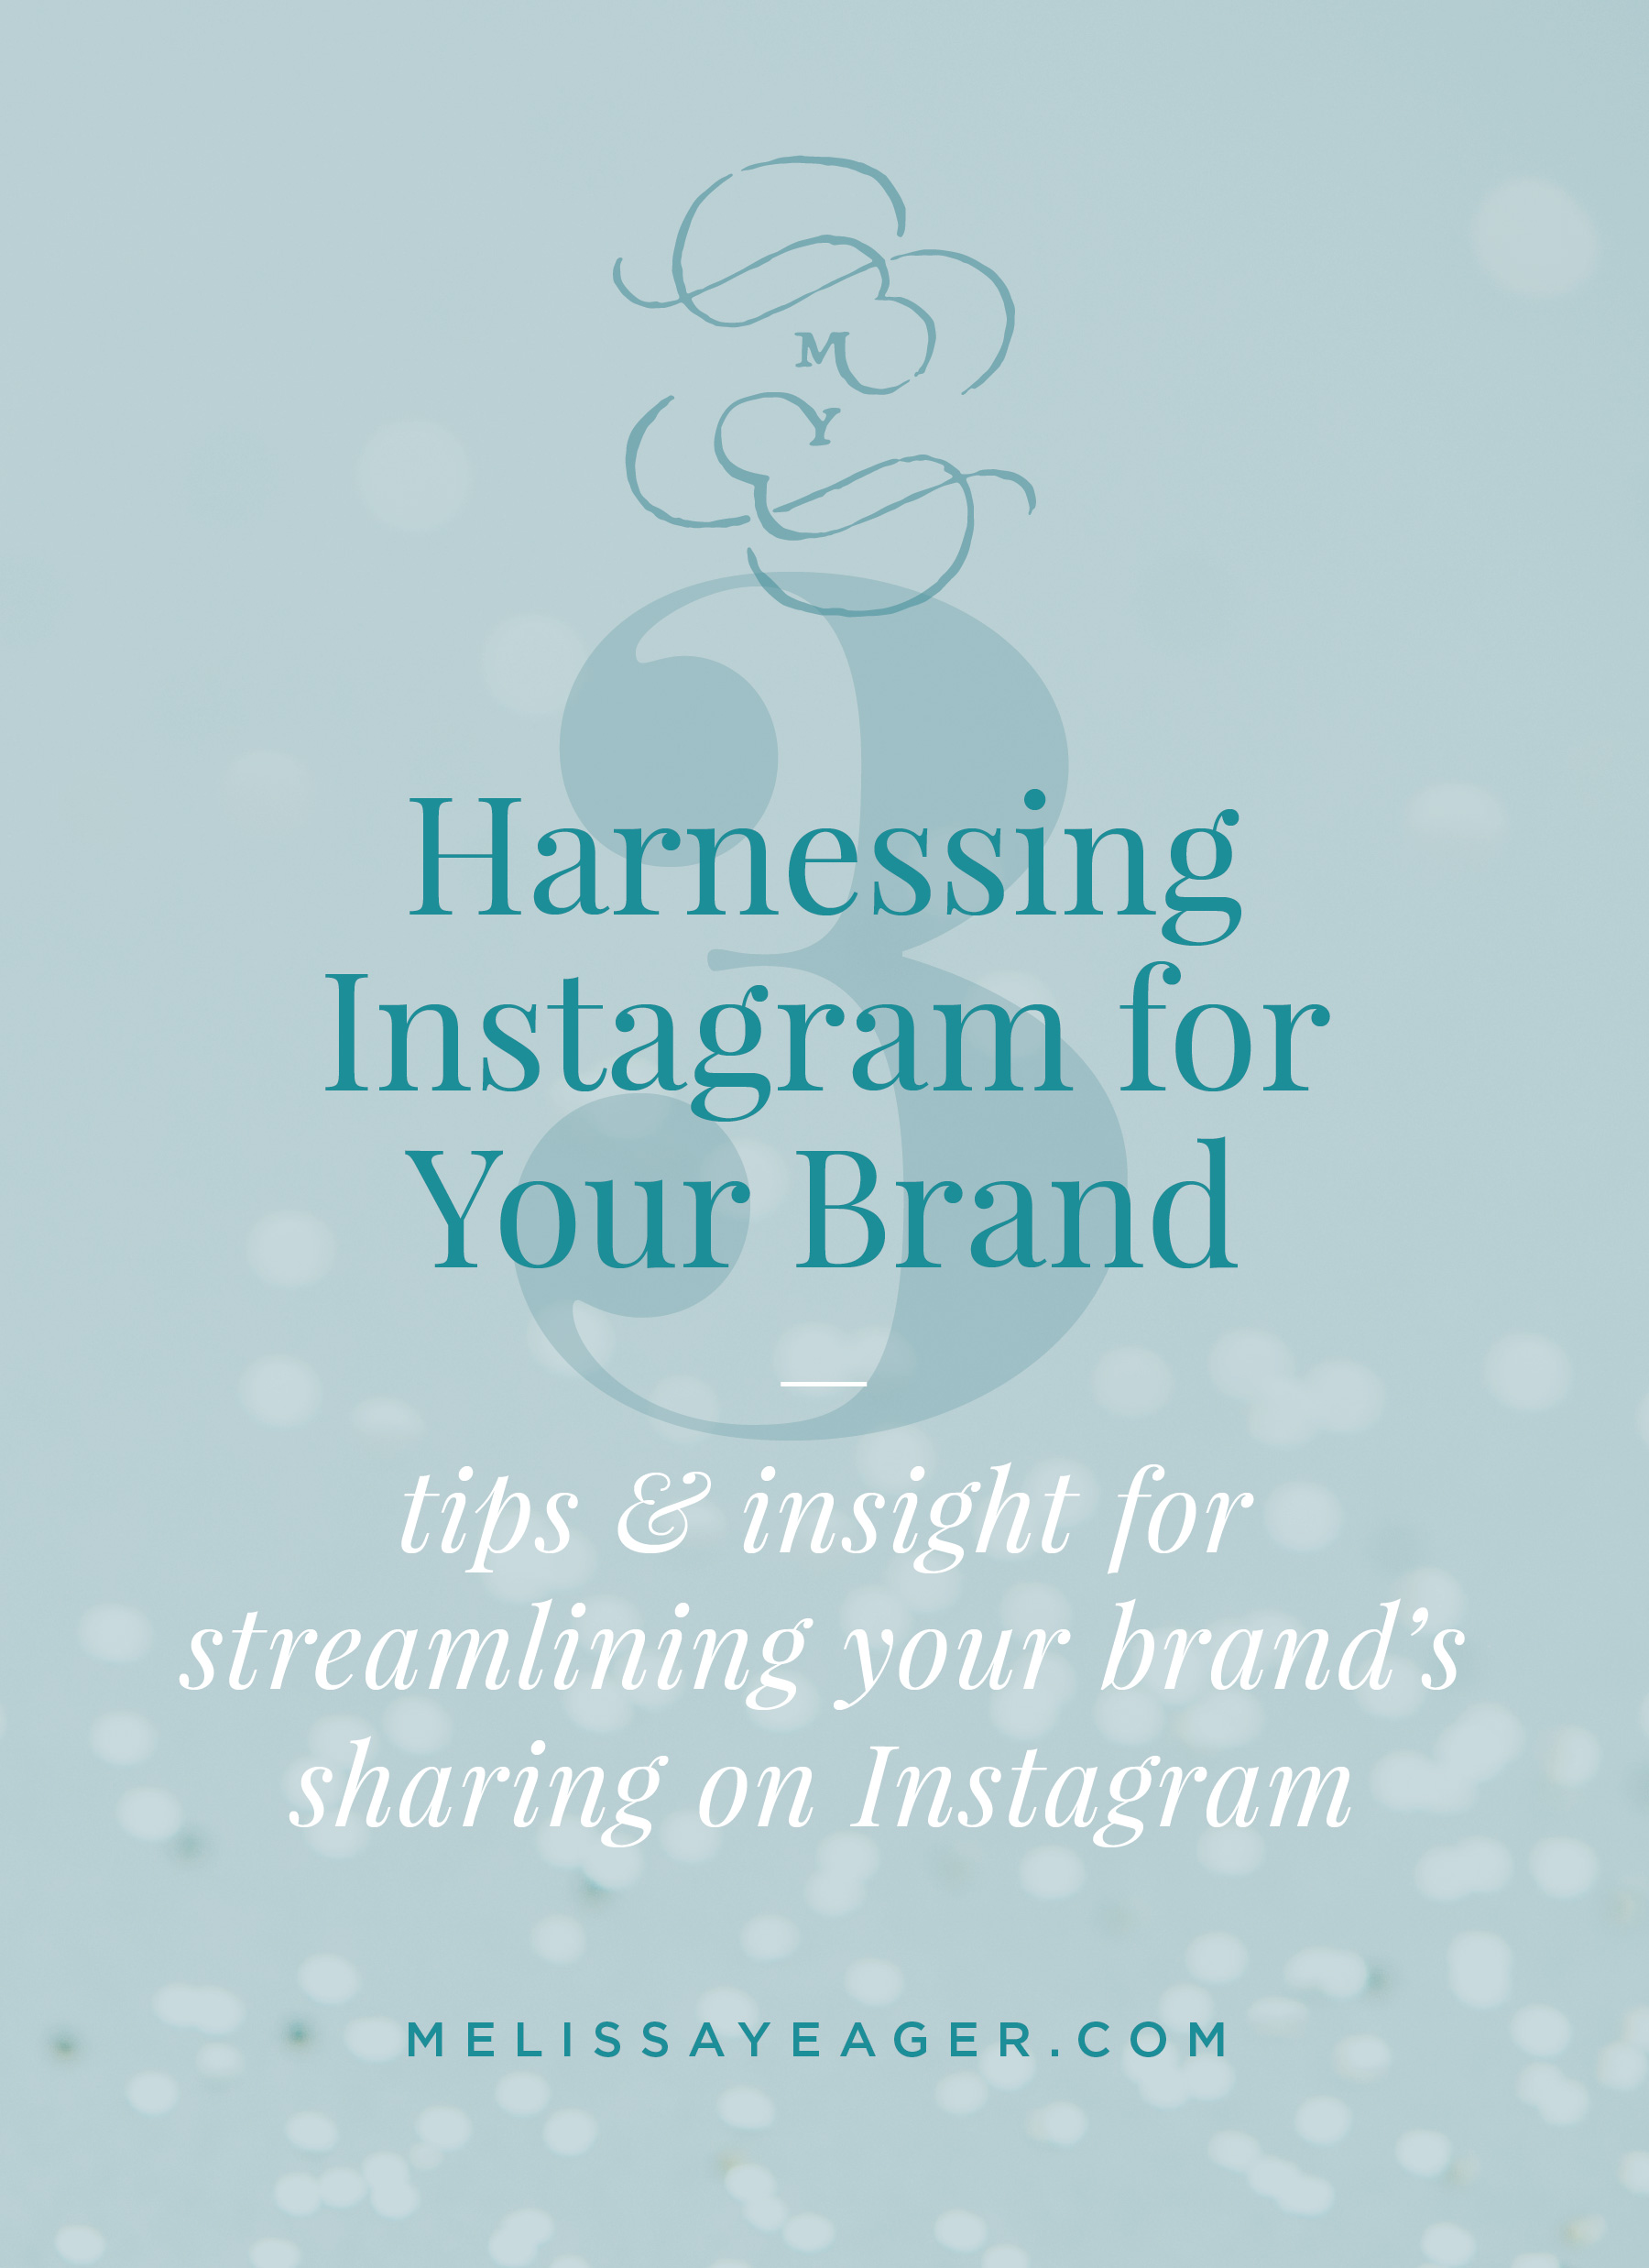 Harnessing Instagram for Your Brand - tips & insight for streamlining your brand's sharing on Instagram